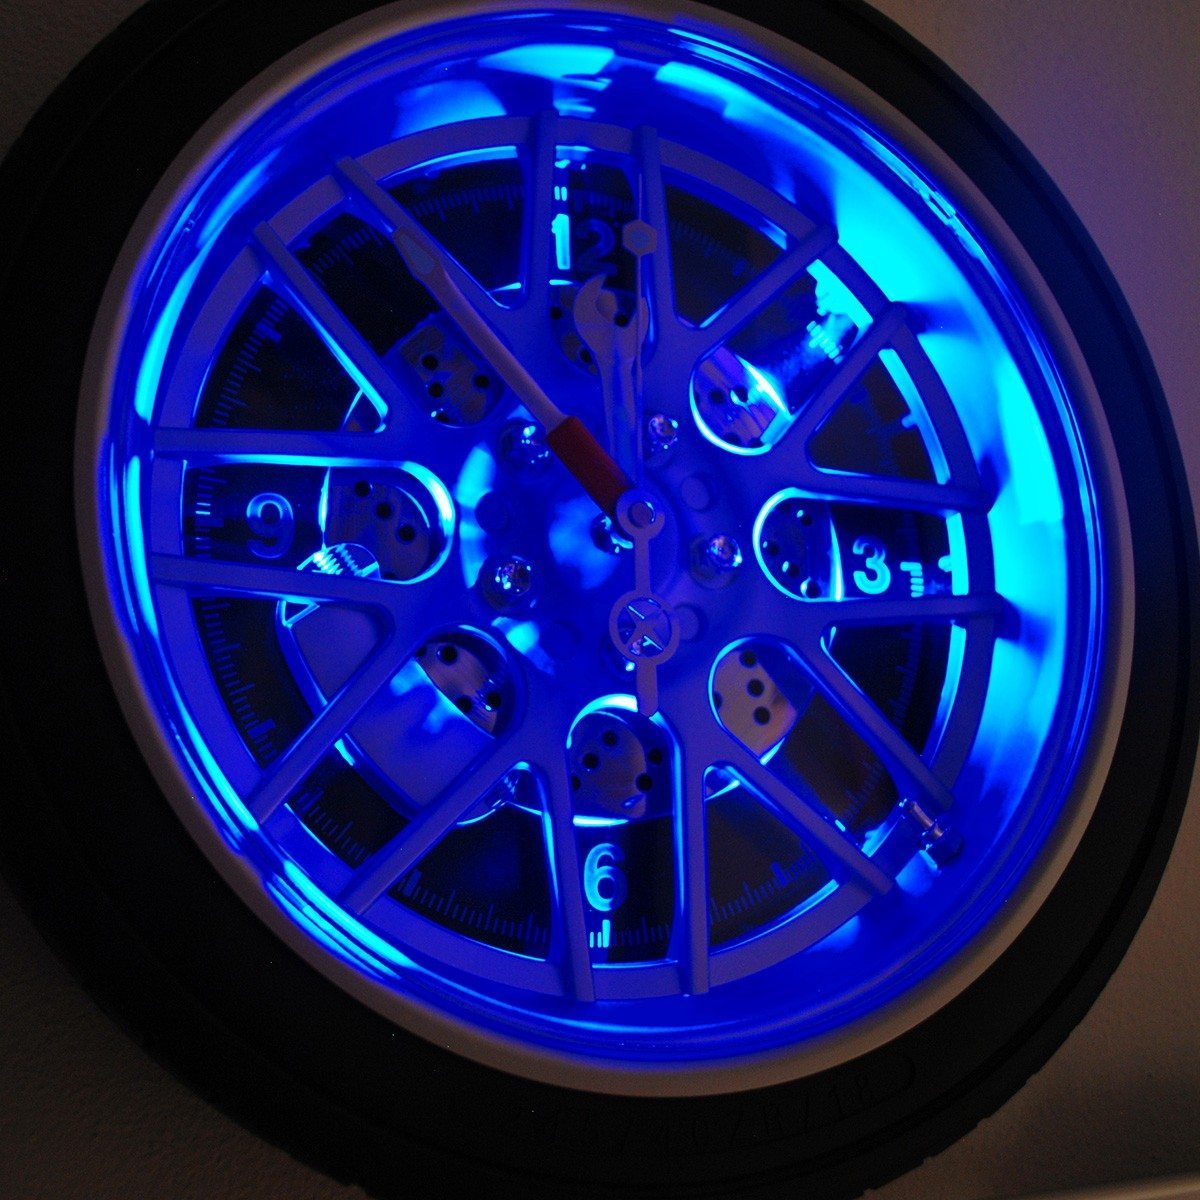 horloge au look de pneu de voiture avec clairage led. Black Bedroom Furniture Sets. Home Design Ideas